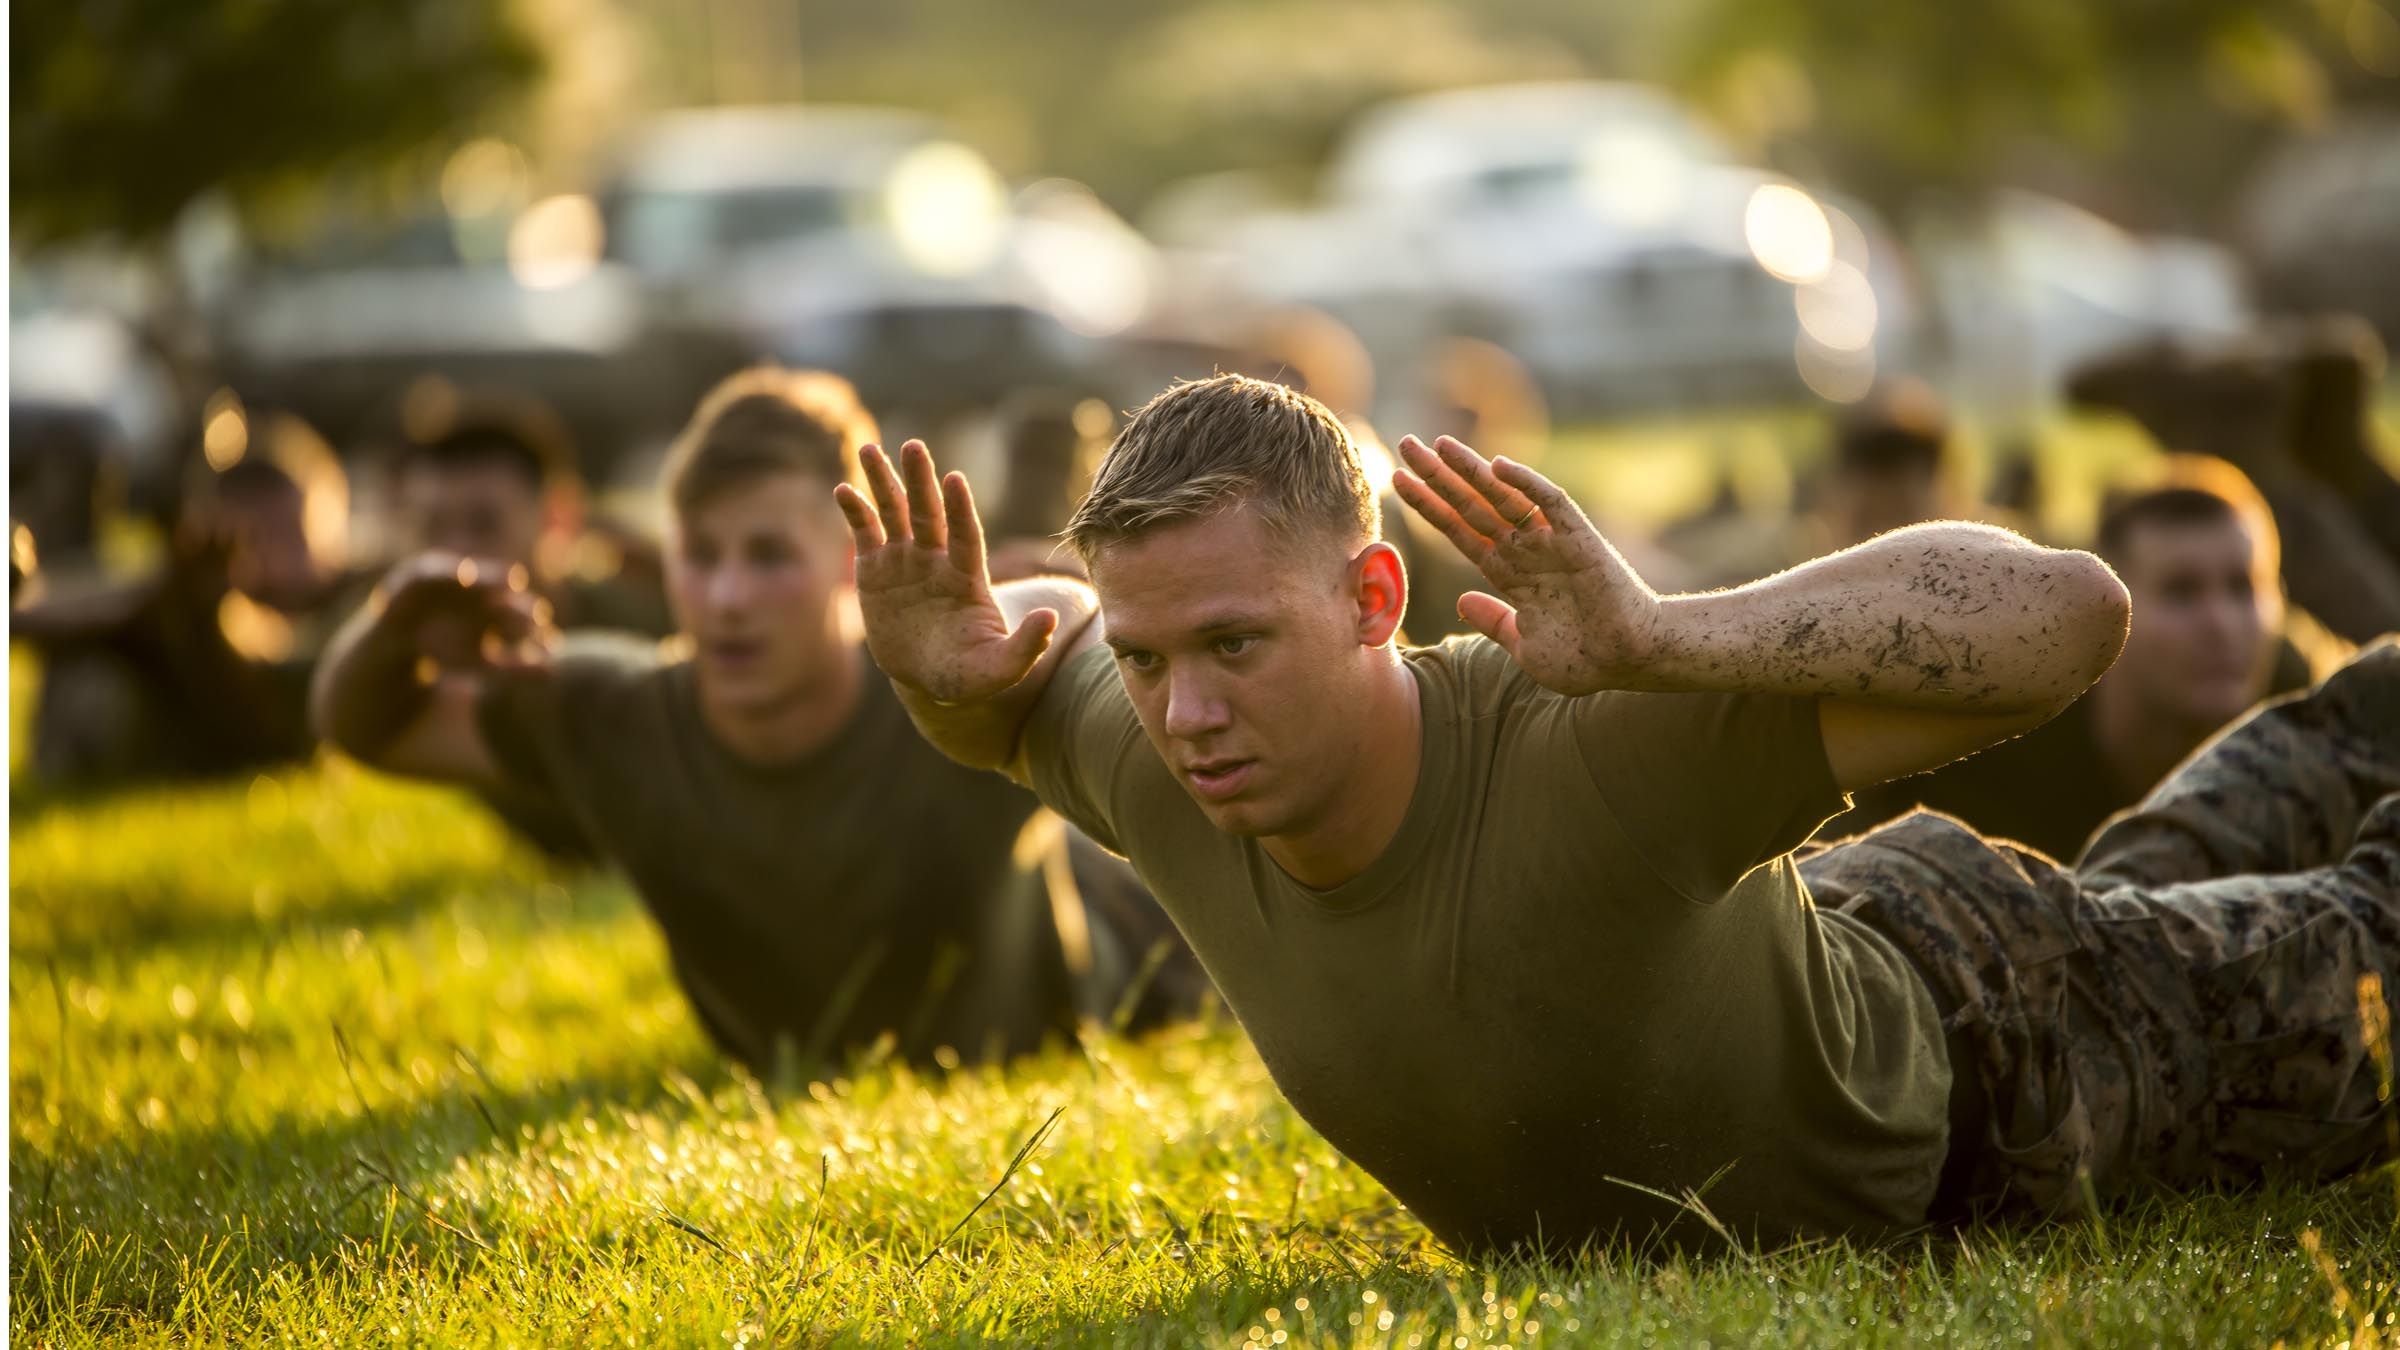 Service member in physical training